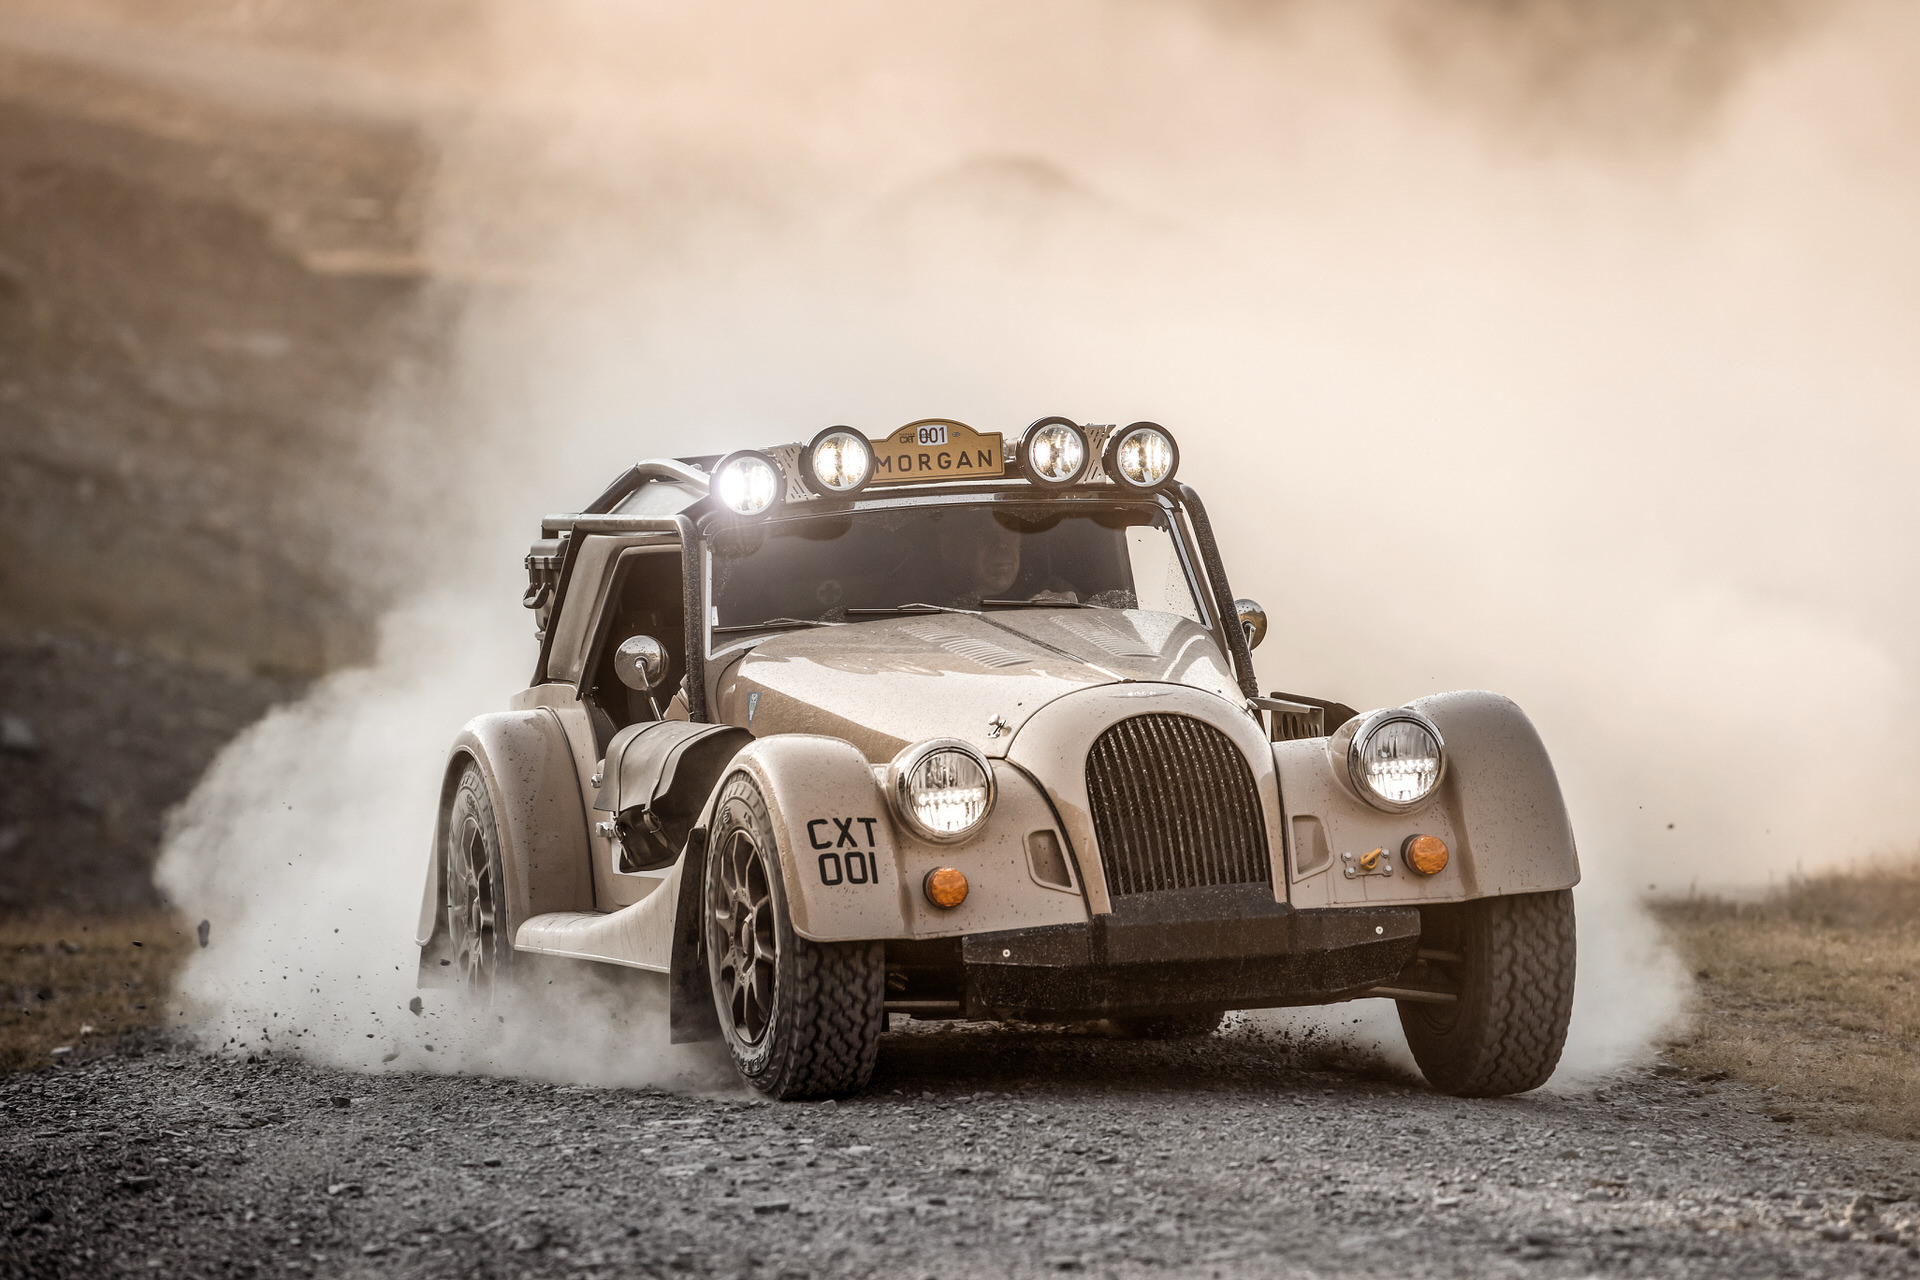 Send it in style with the rally-prepped Morgan Plus Four CX-T